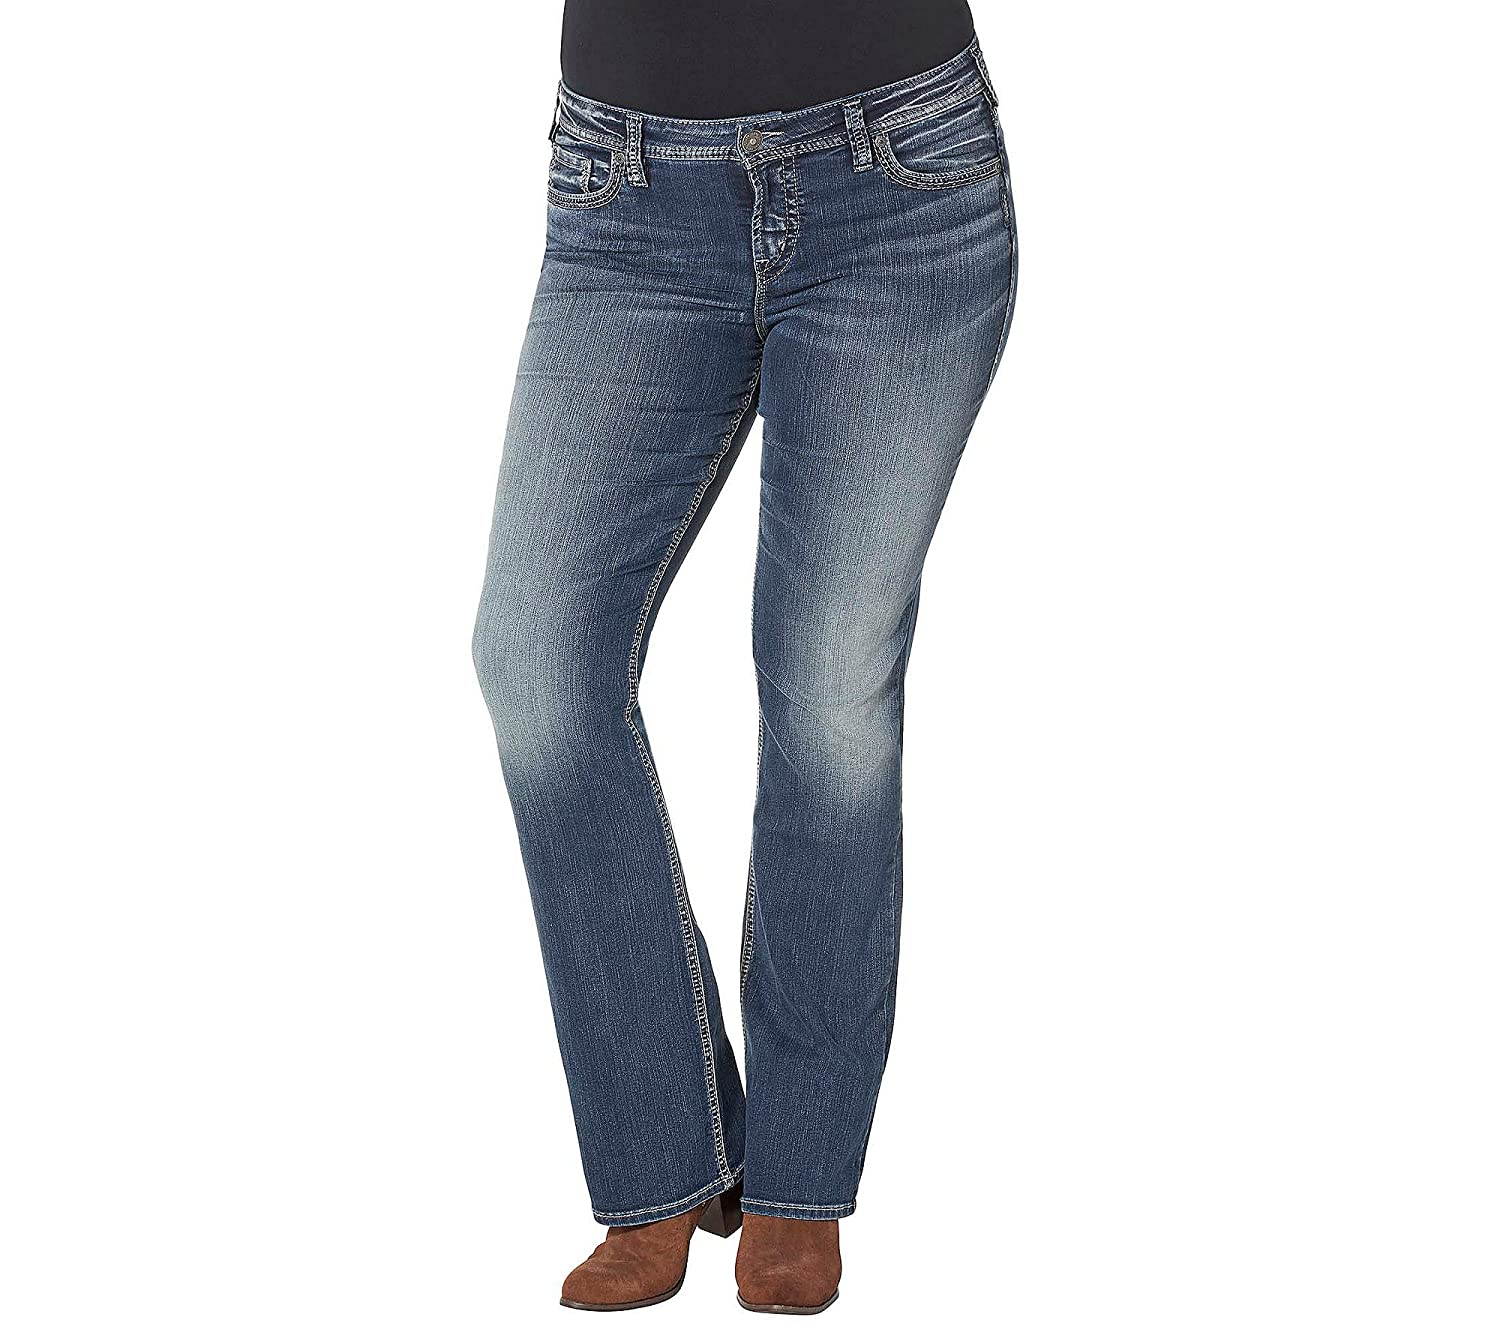 Silver Jeans Co. Plus Size Aiko Mid Rise Bootcut Jeans good